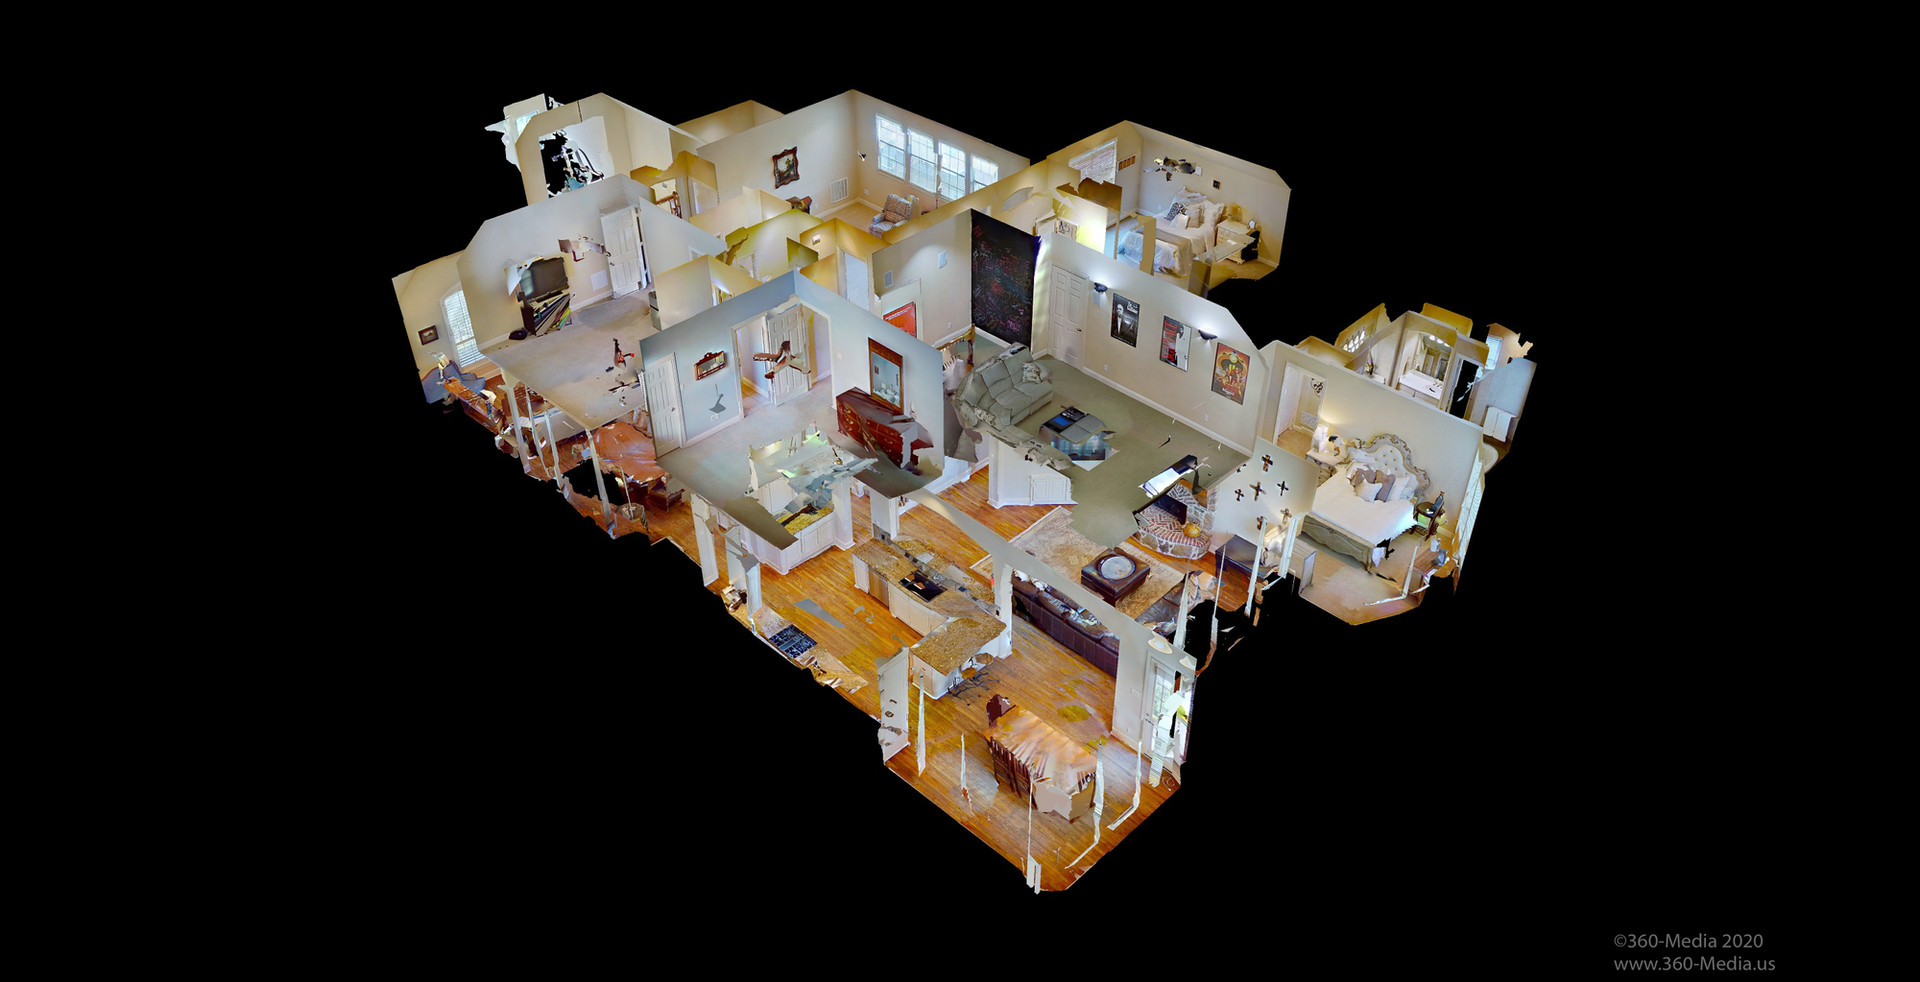 360-Media, The Property Imaging Experts-